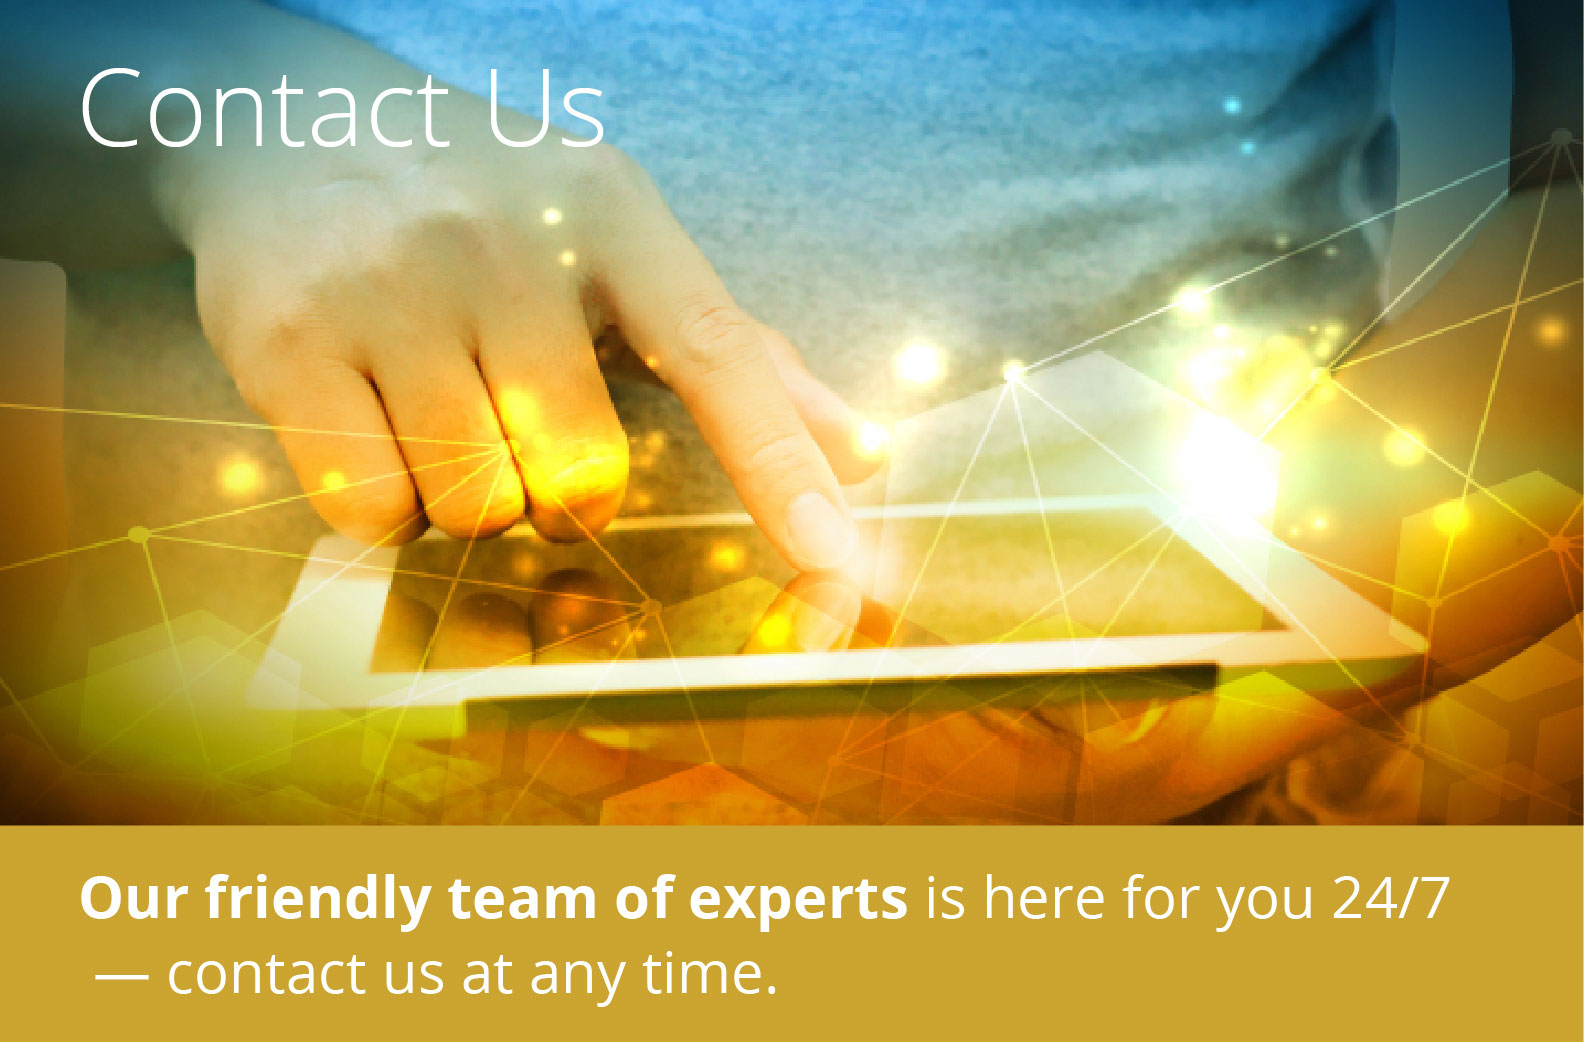 contact-us-anytime